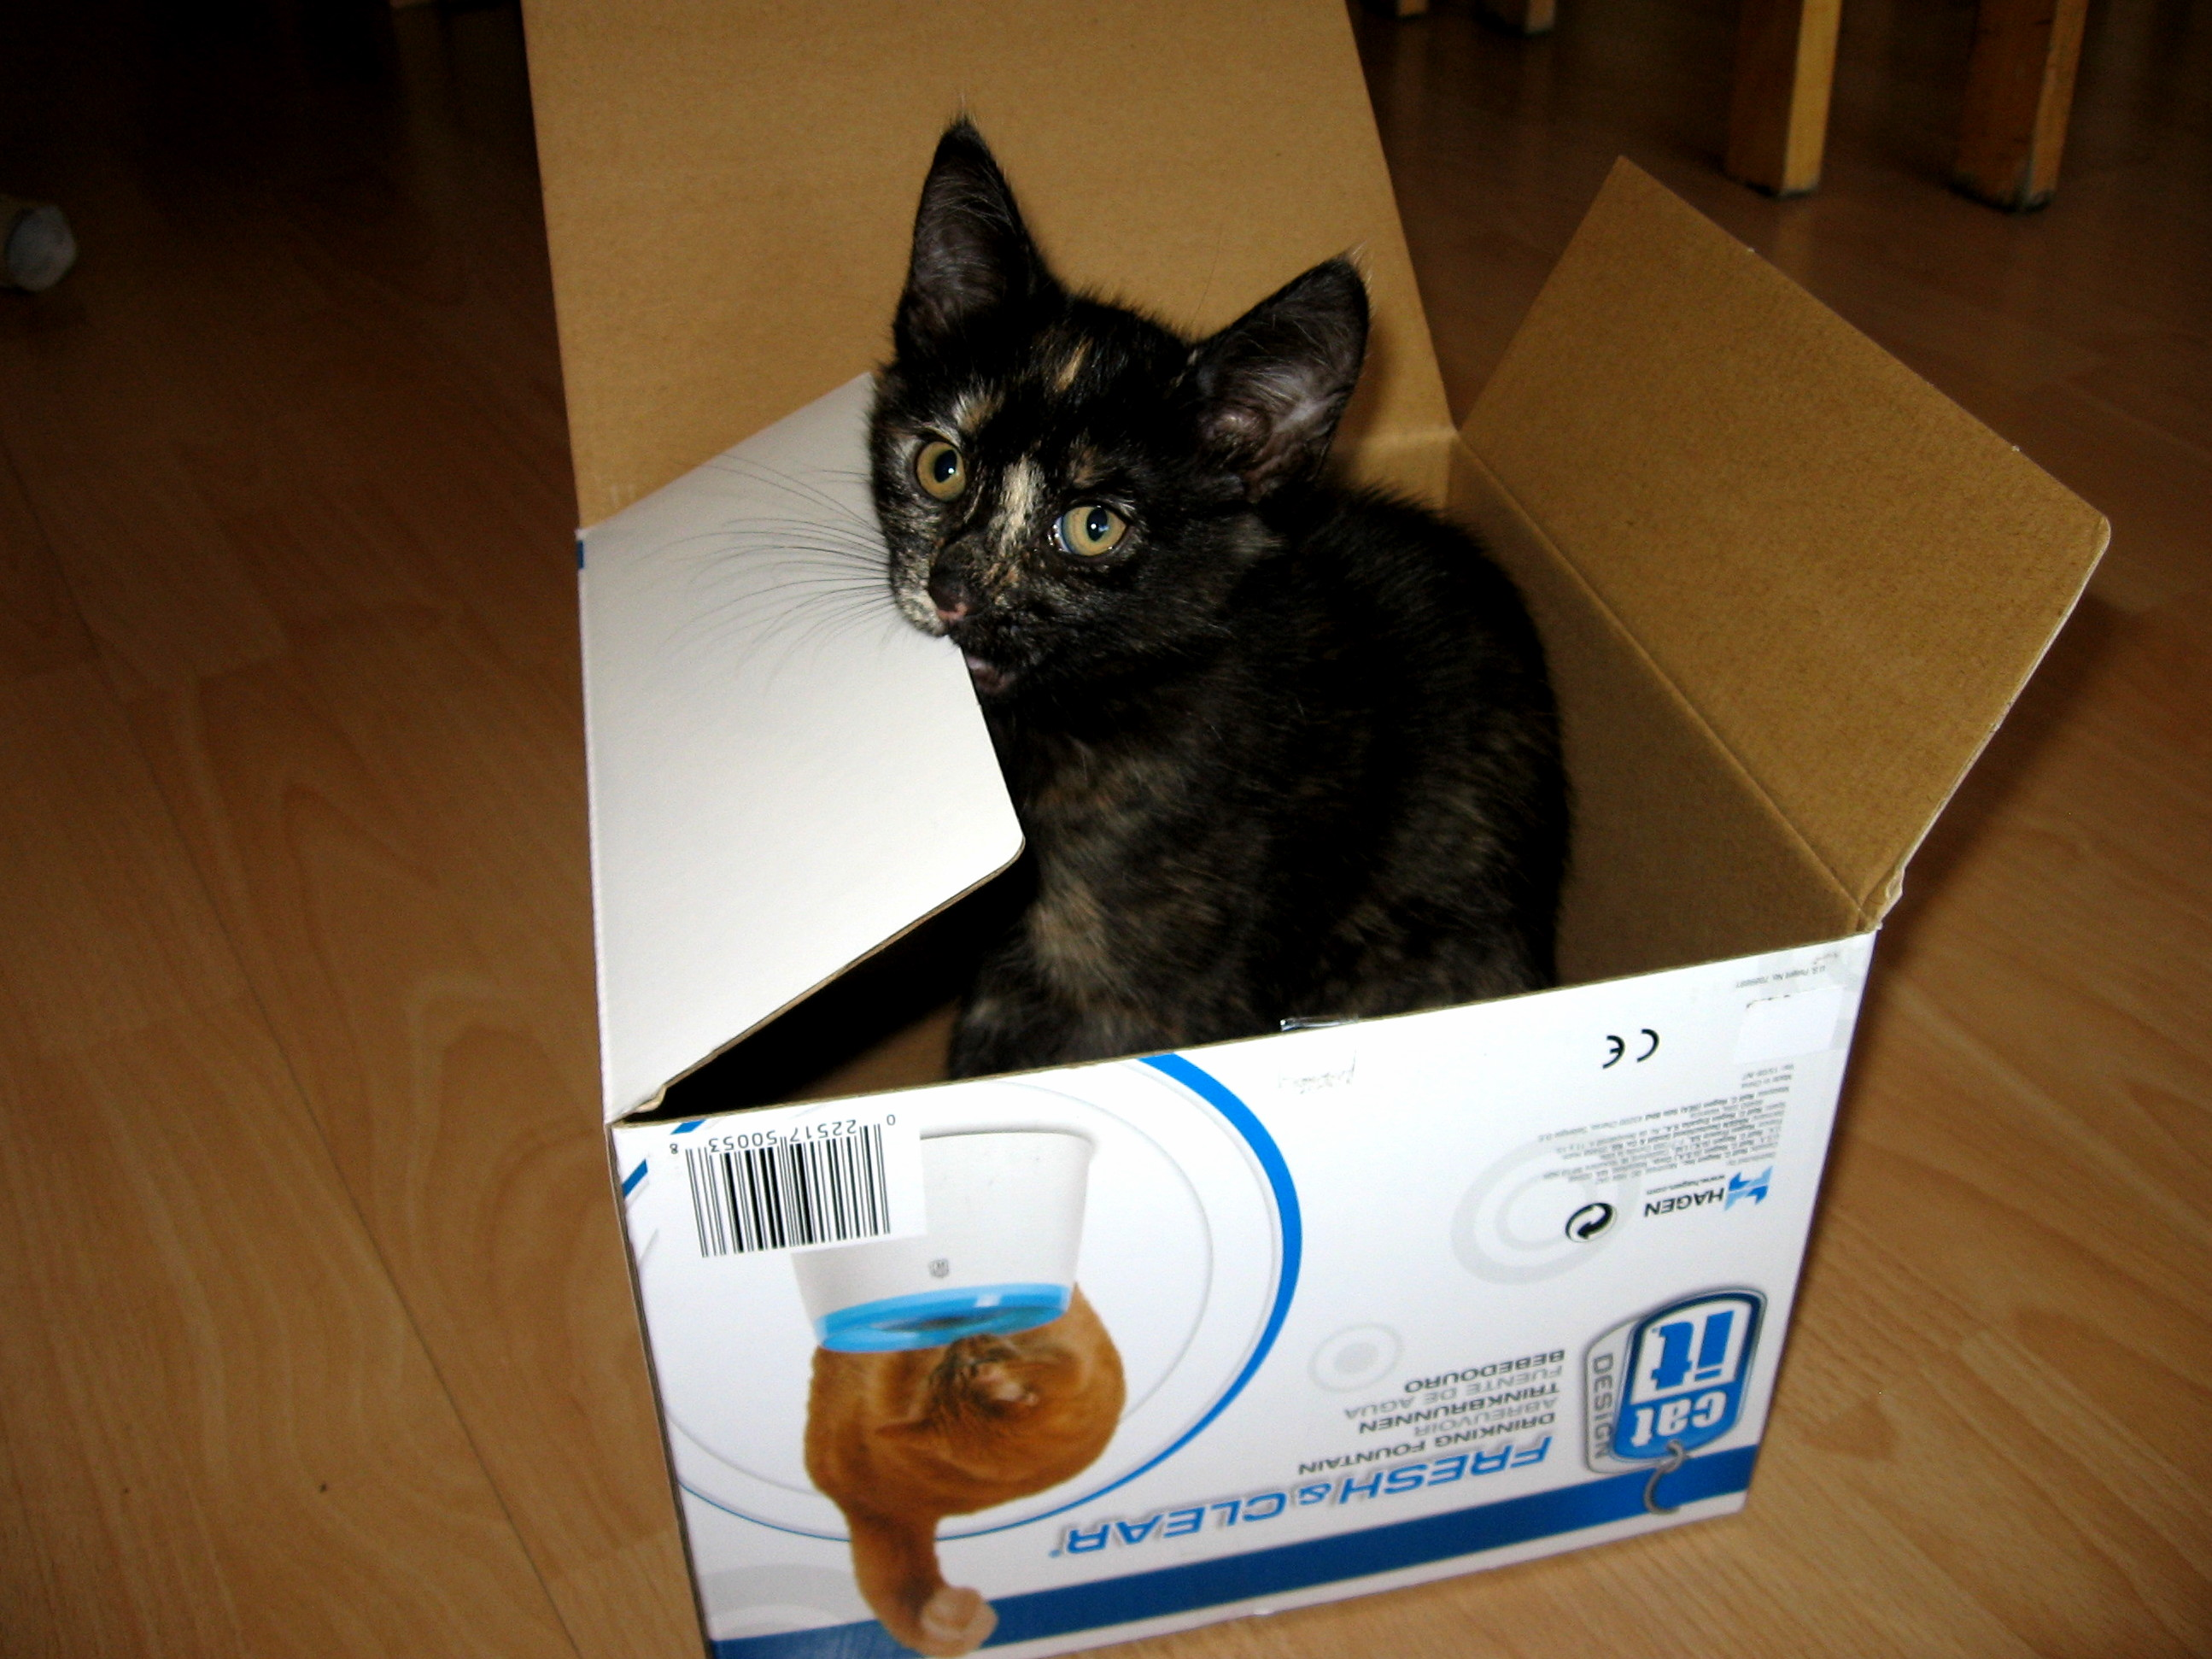 The love of cats for boxes is inborn…